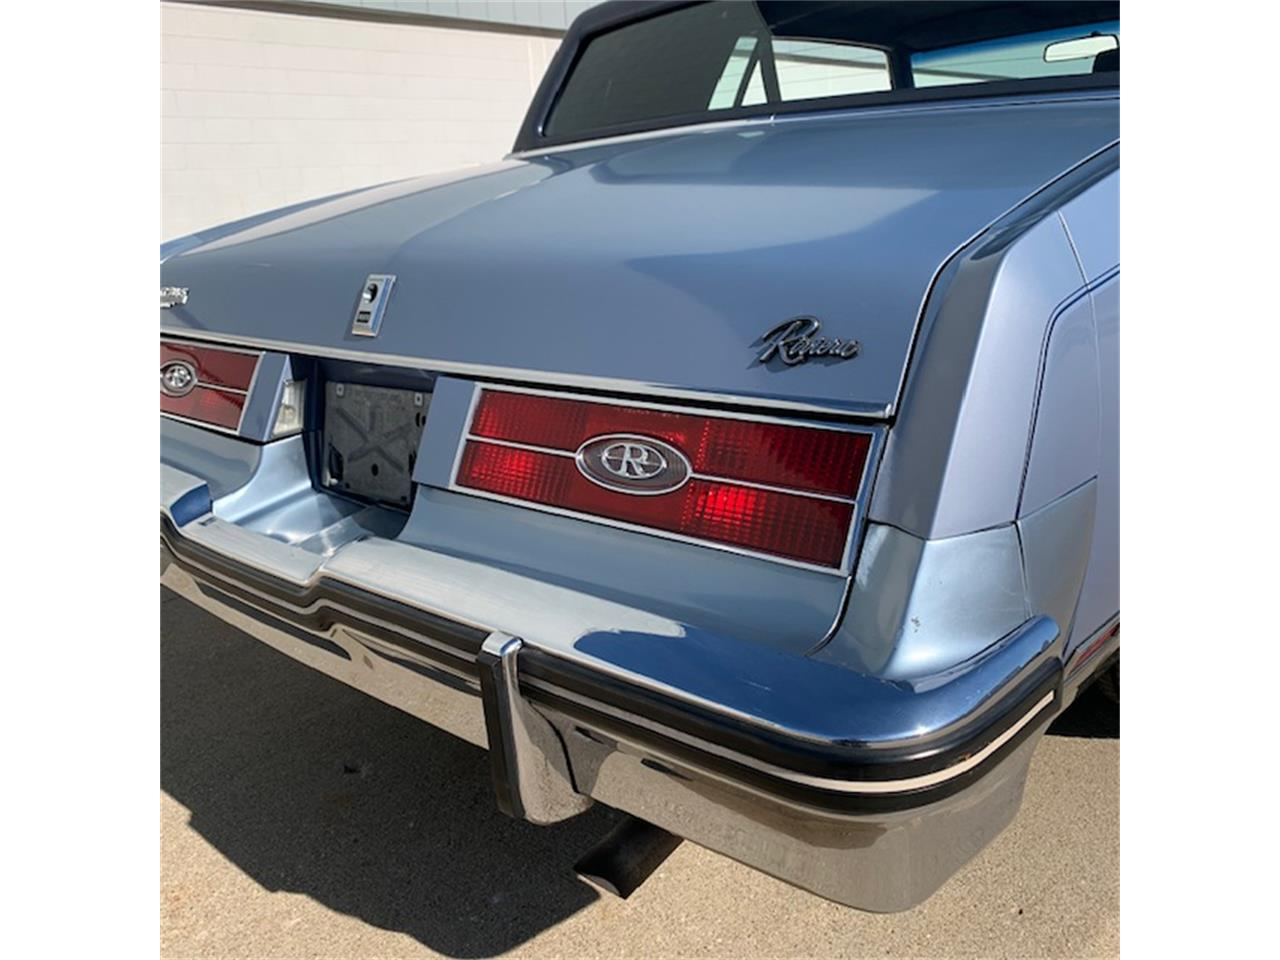 1984 Buick Riviera (CC-1319501) for sale in Macomb, Michigan